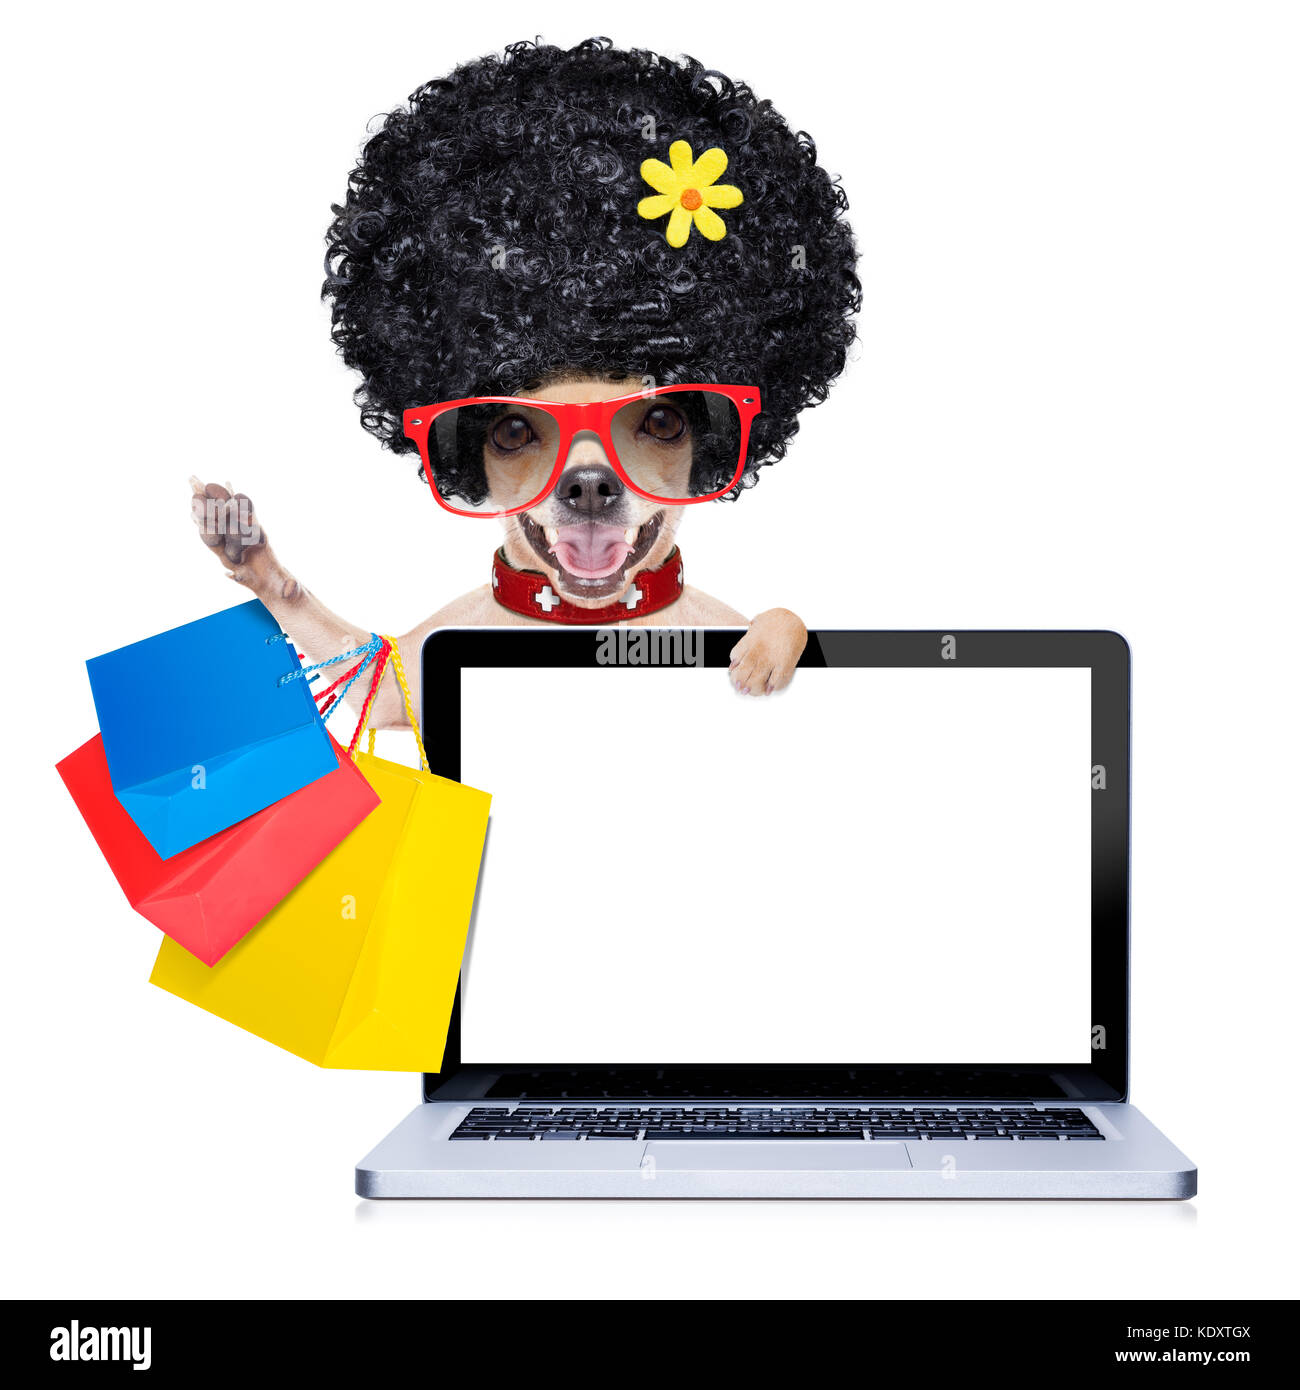 chihuahua dog with shopping bags behind laptop pc computer screen or